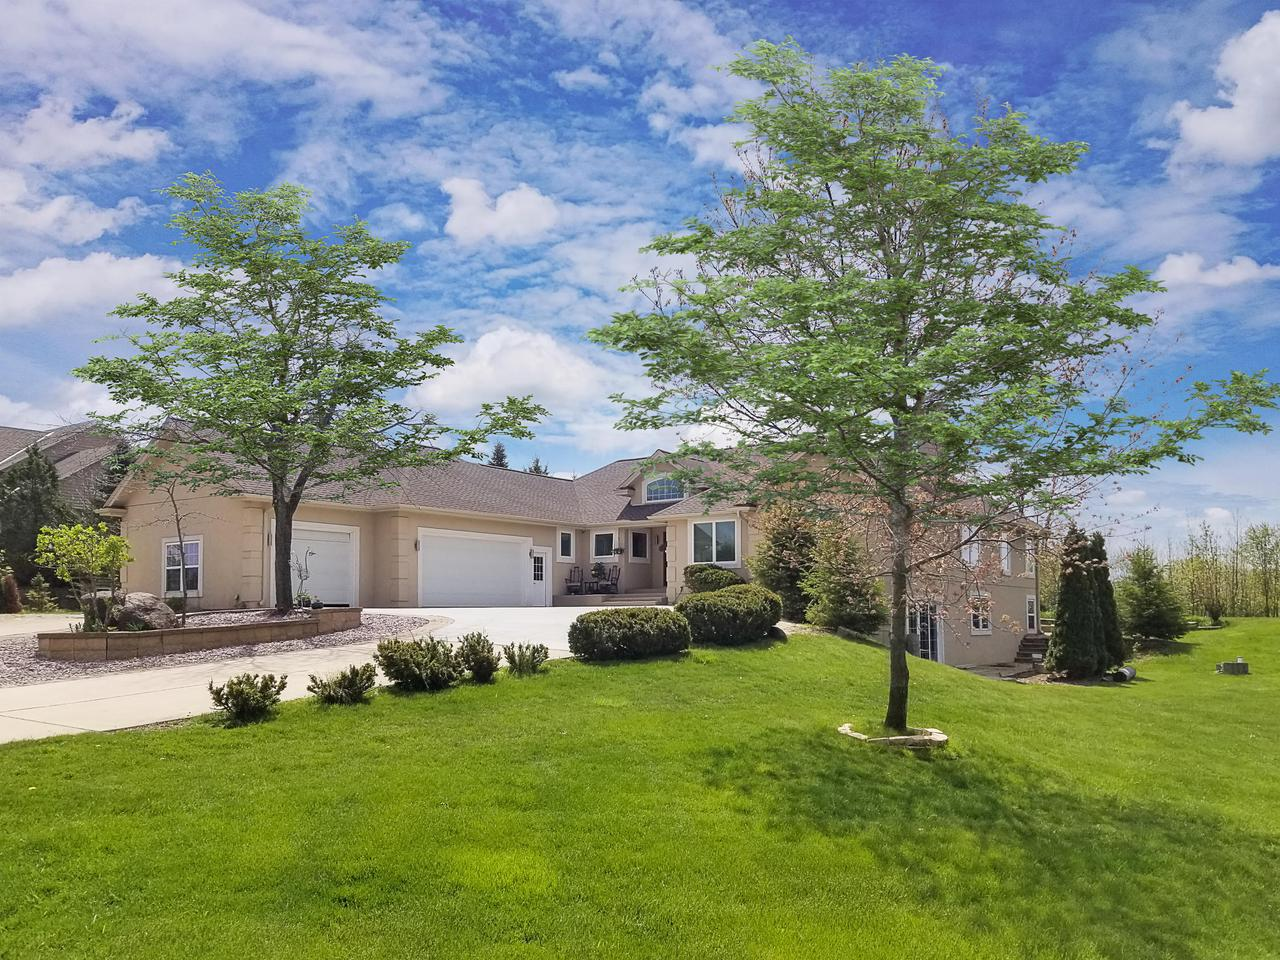 1539 Fox Hollow Ln LANE, CEDARBURG, WI 53012